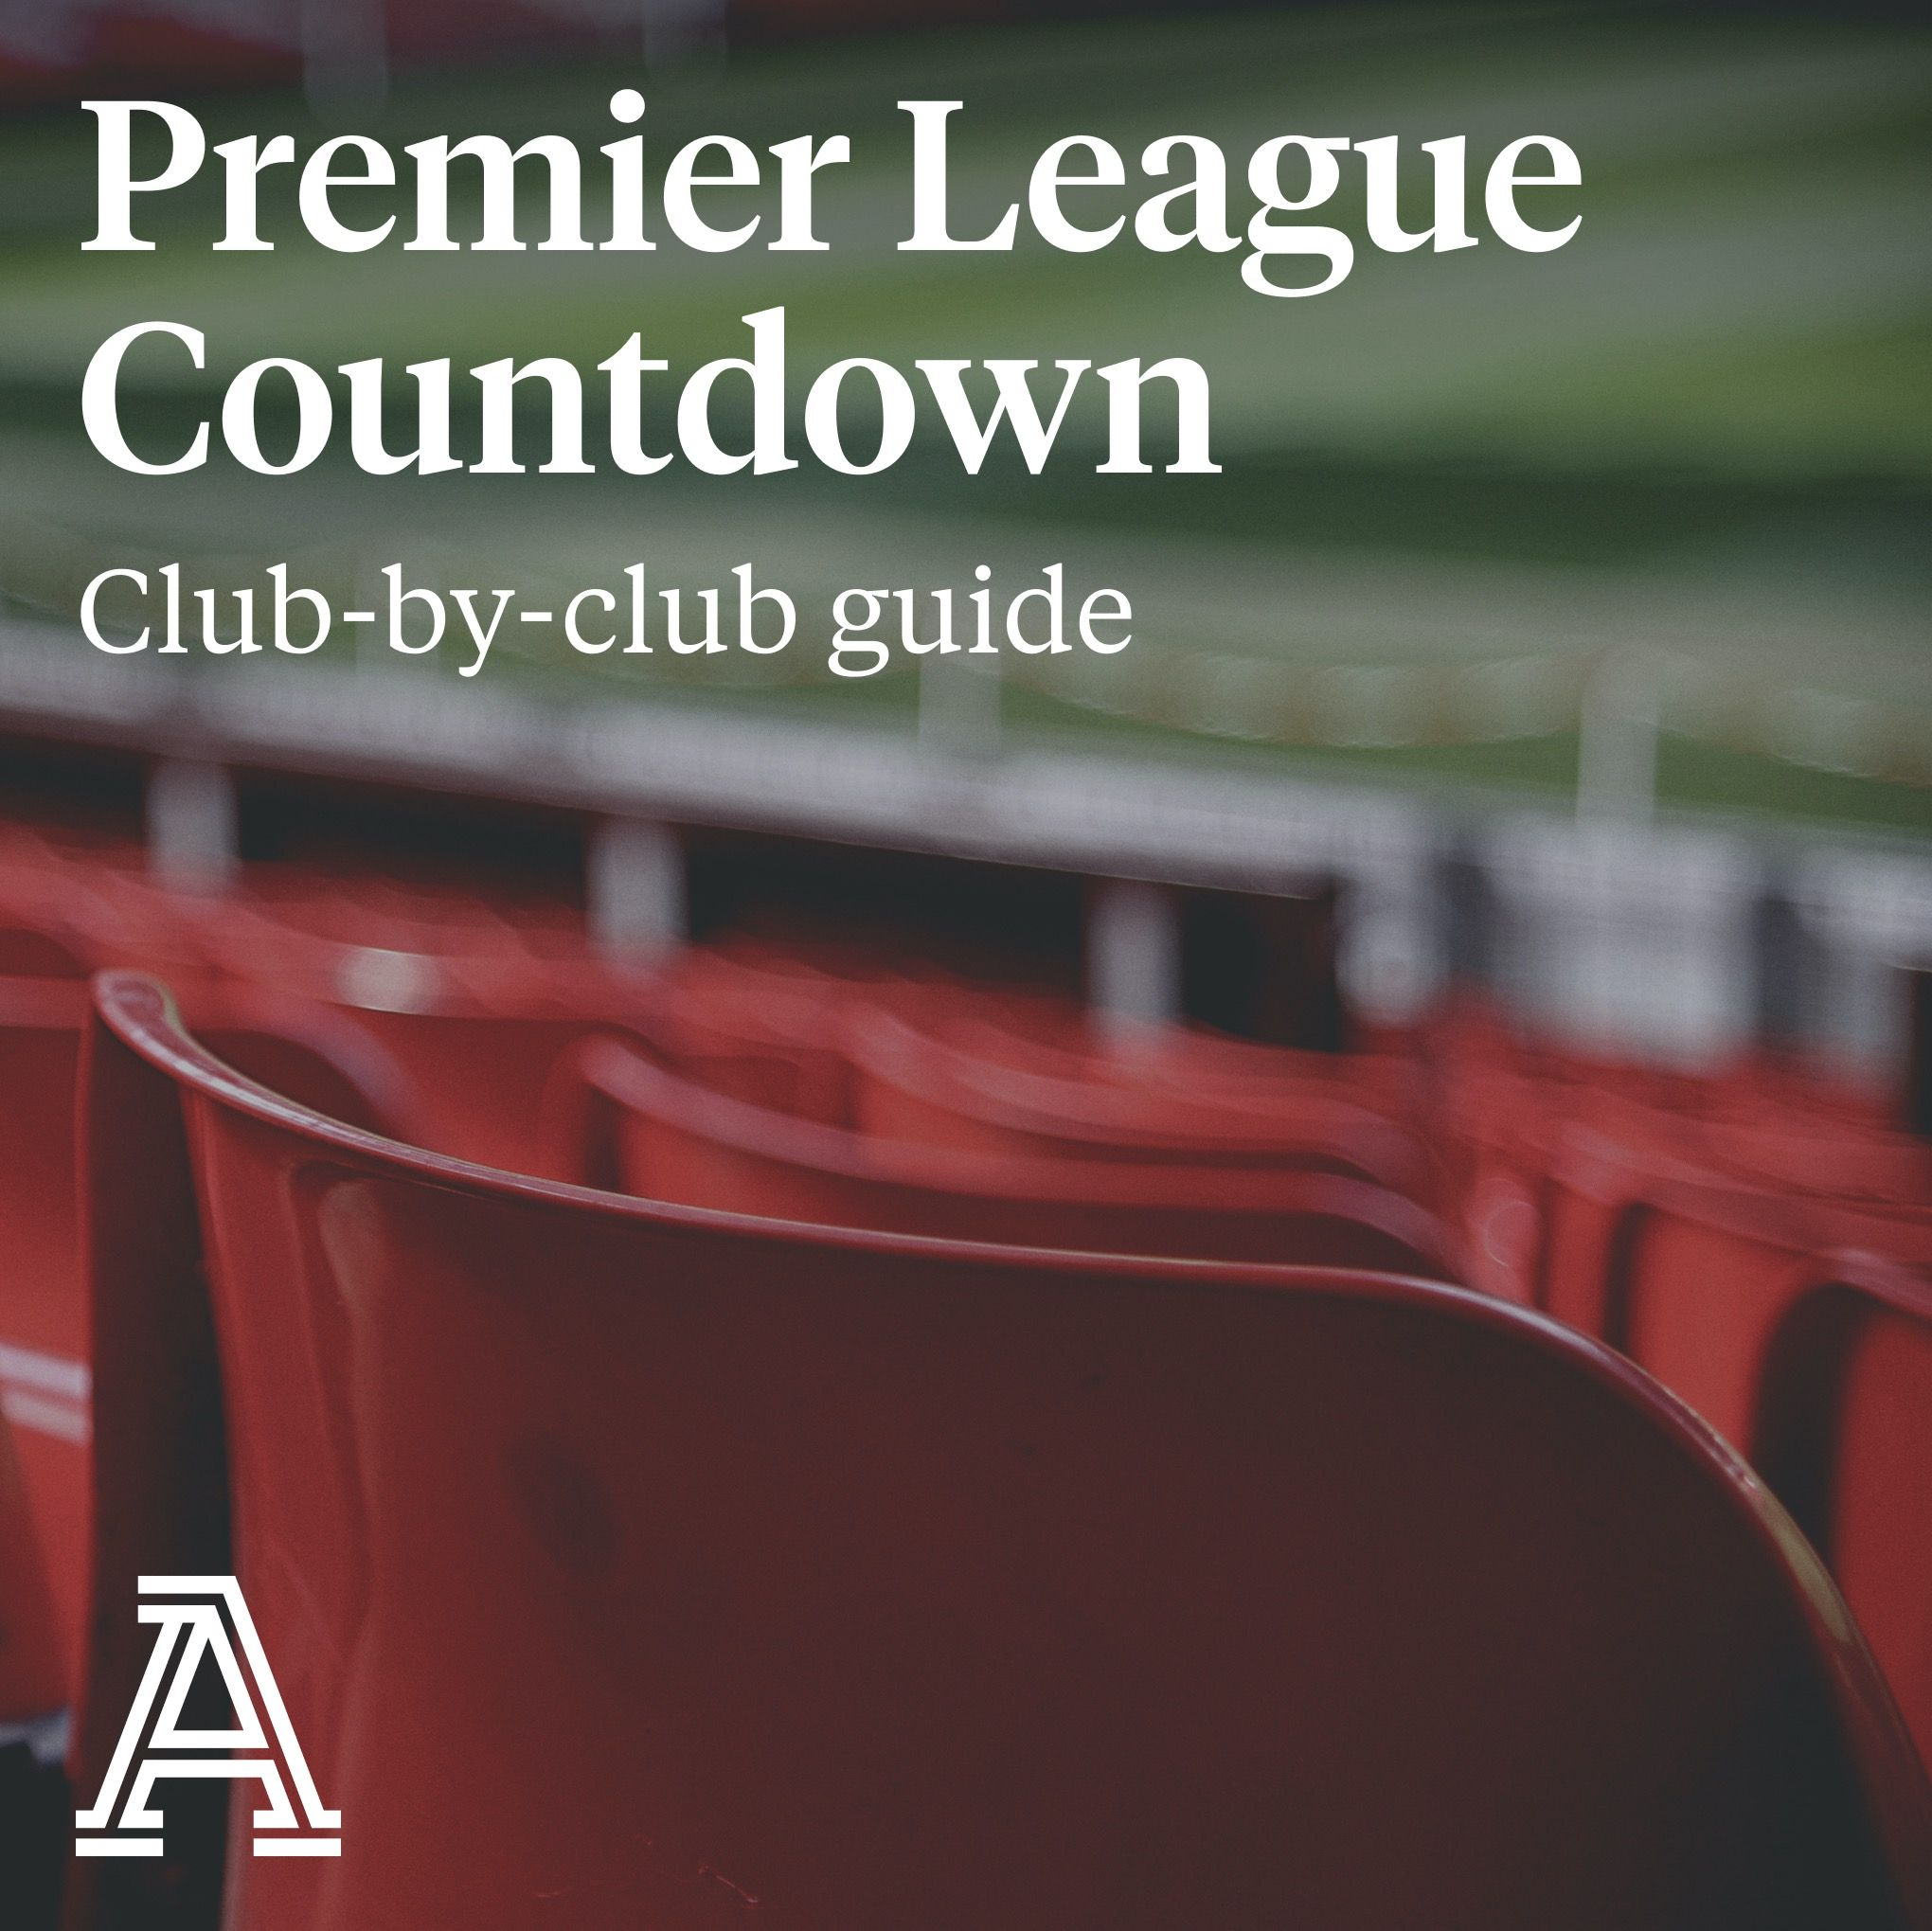 Premier League Countdown - Manchester United